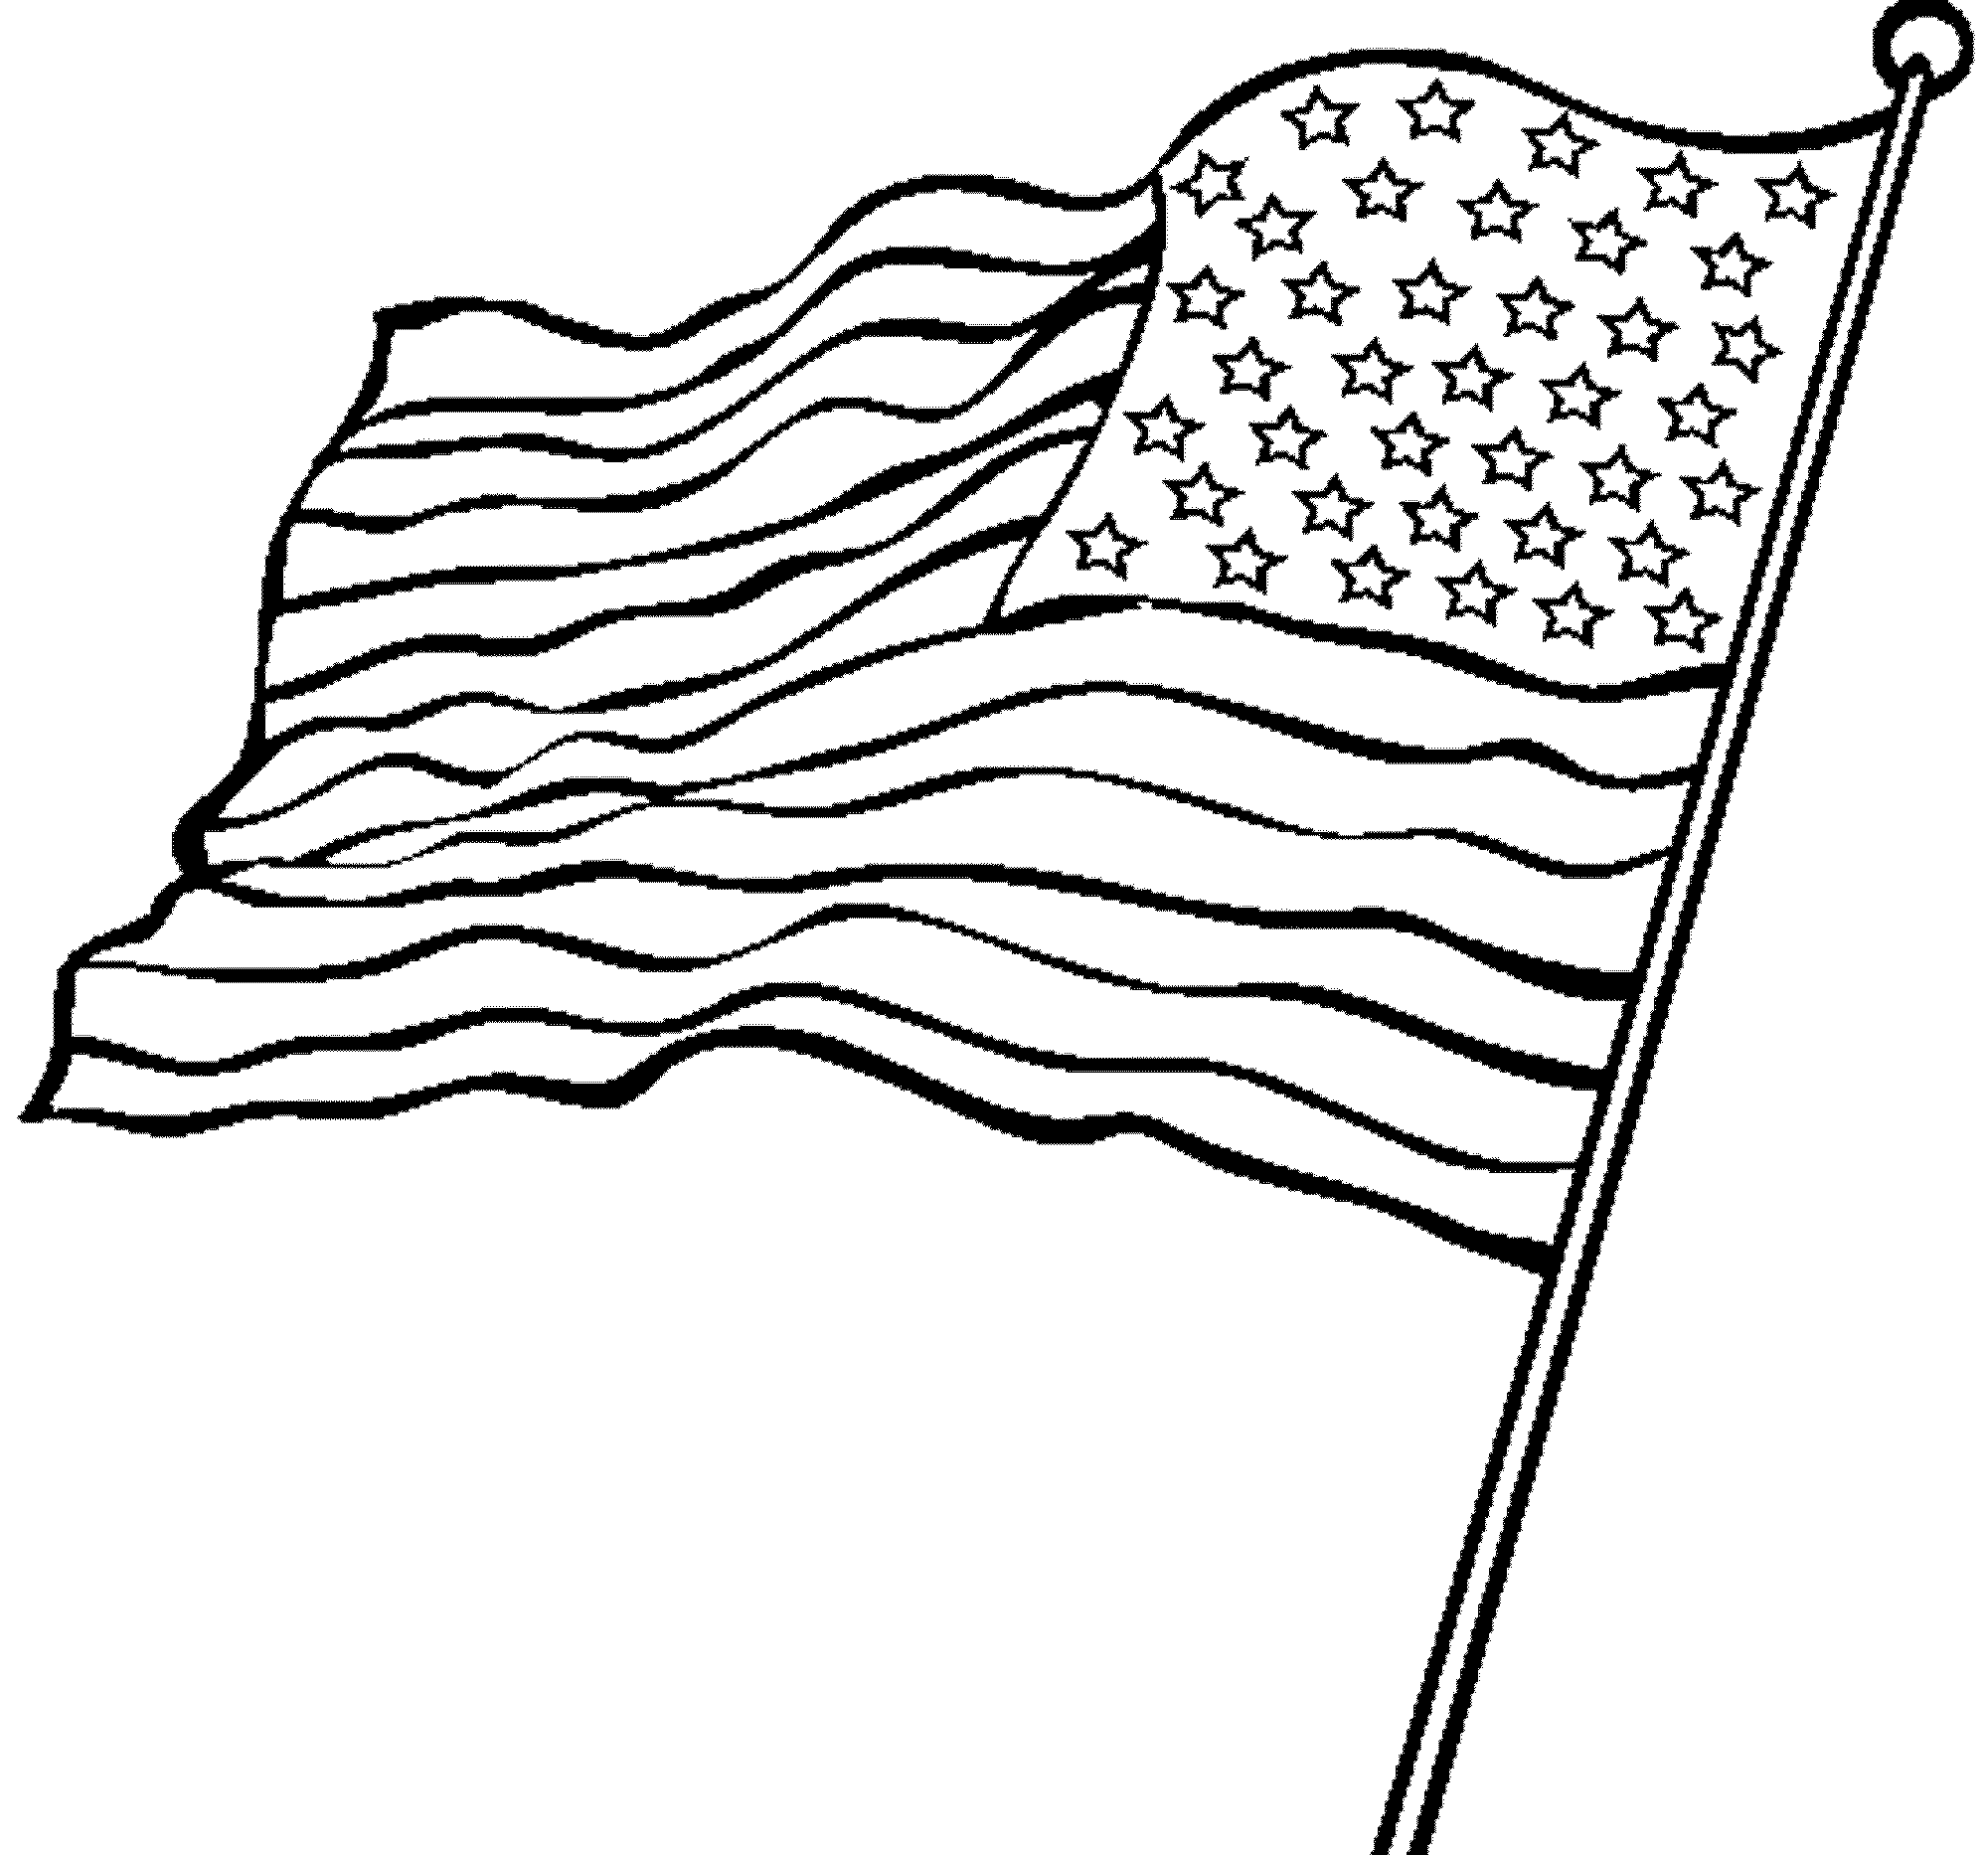 2000x1866 american flag coloring page for the love of the country